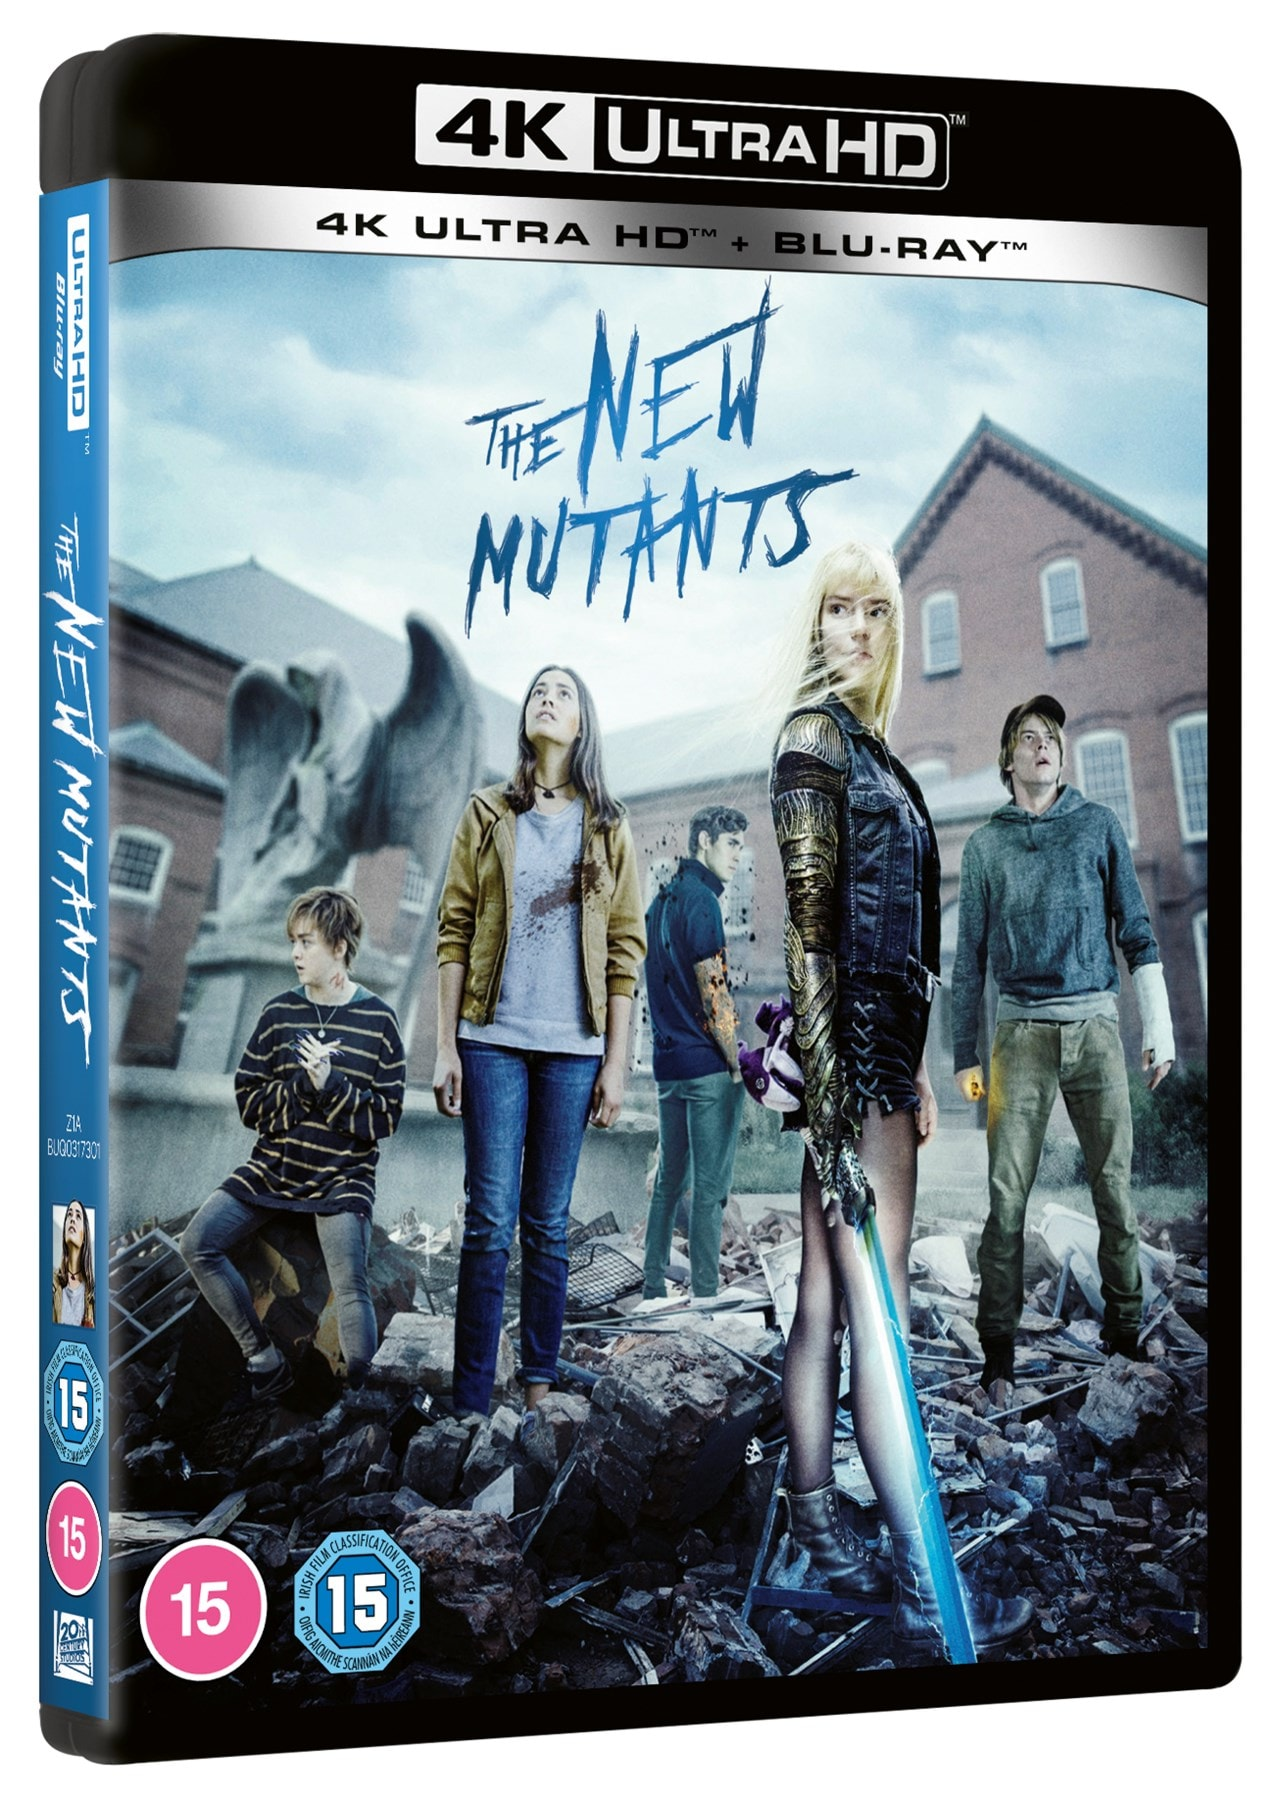 The New Mutants - 4